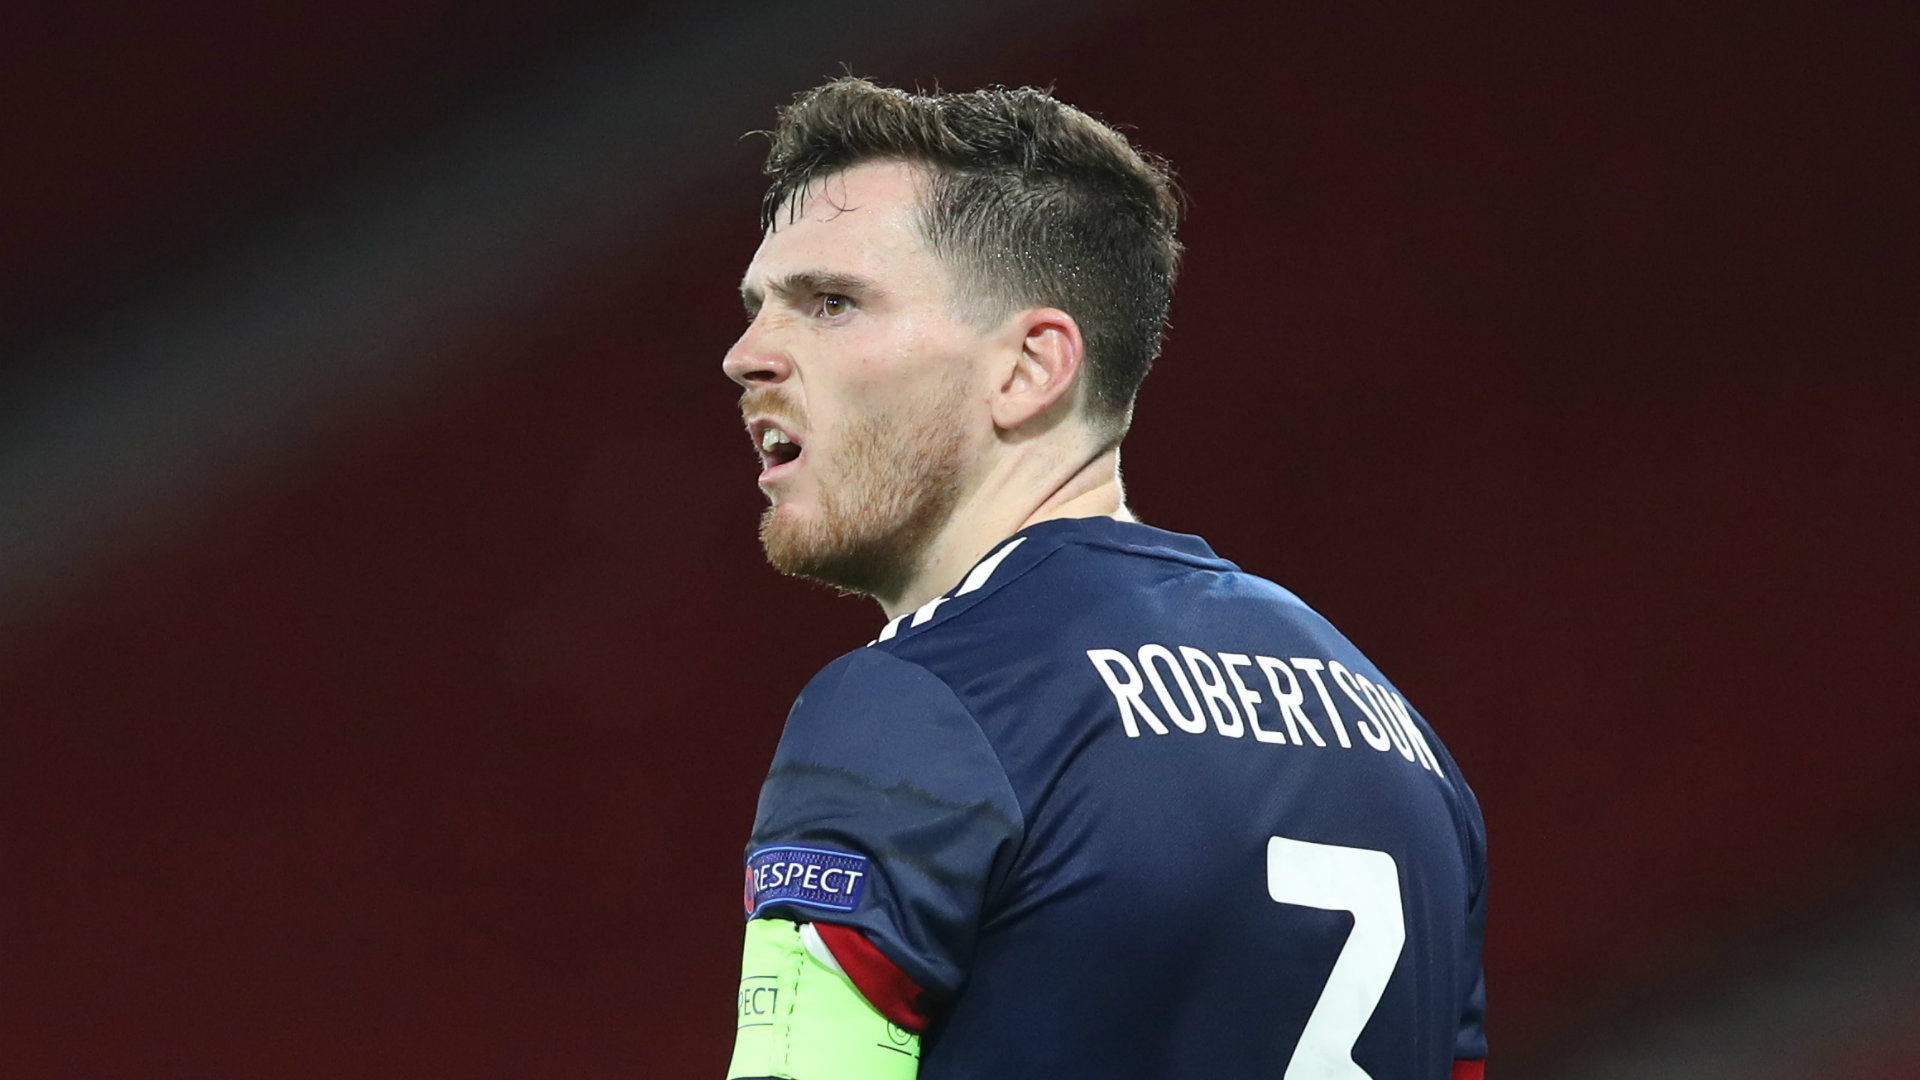 New injury nightmare for Liverpool with Robertson out of Scotland's Nations League clash   Goal.com